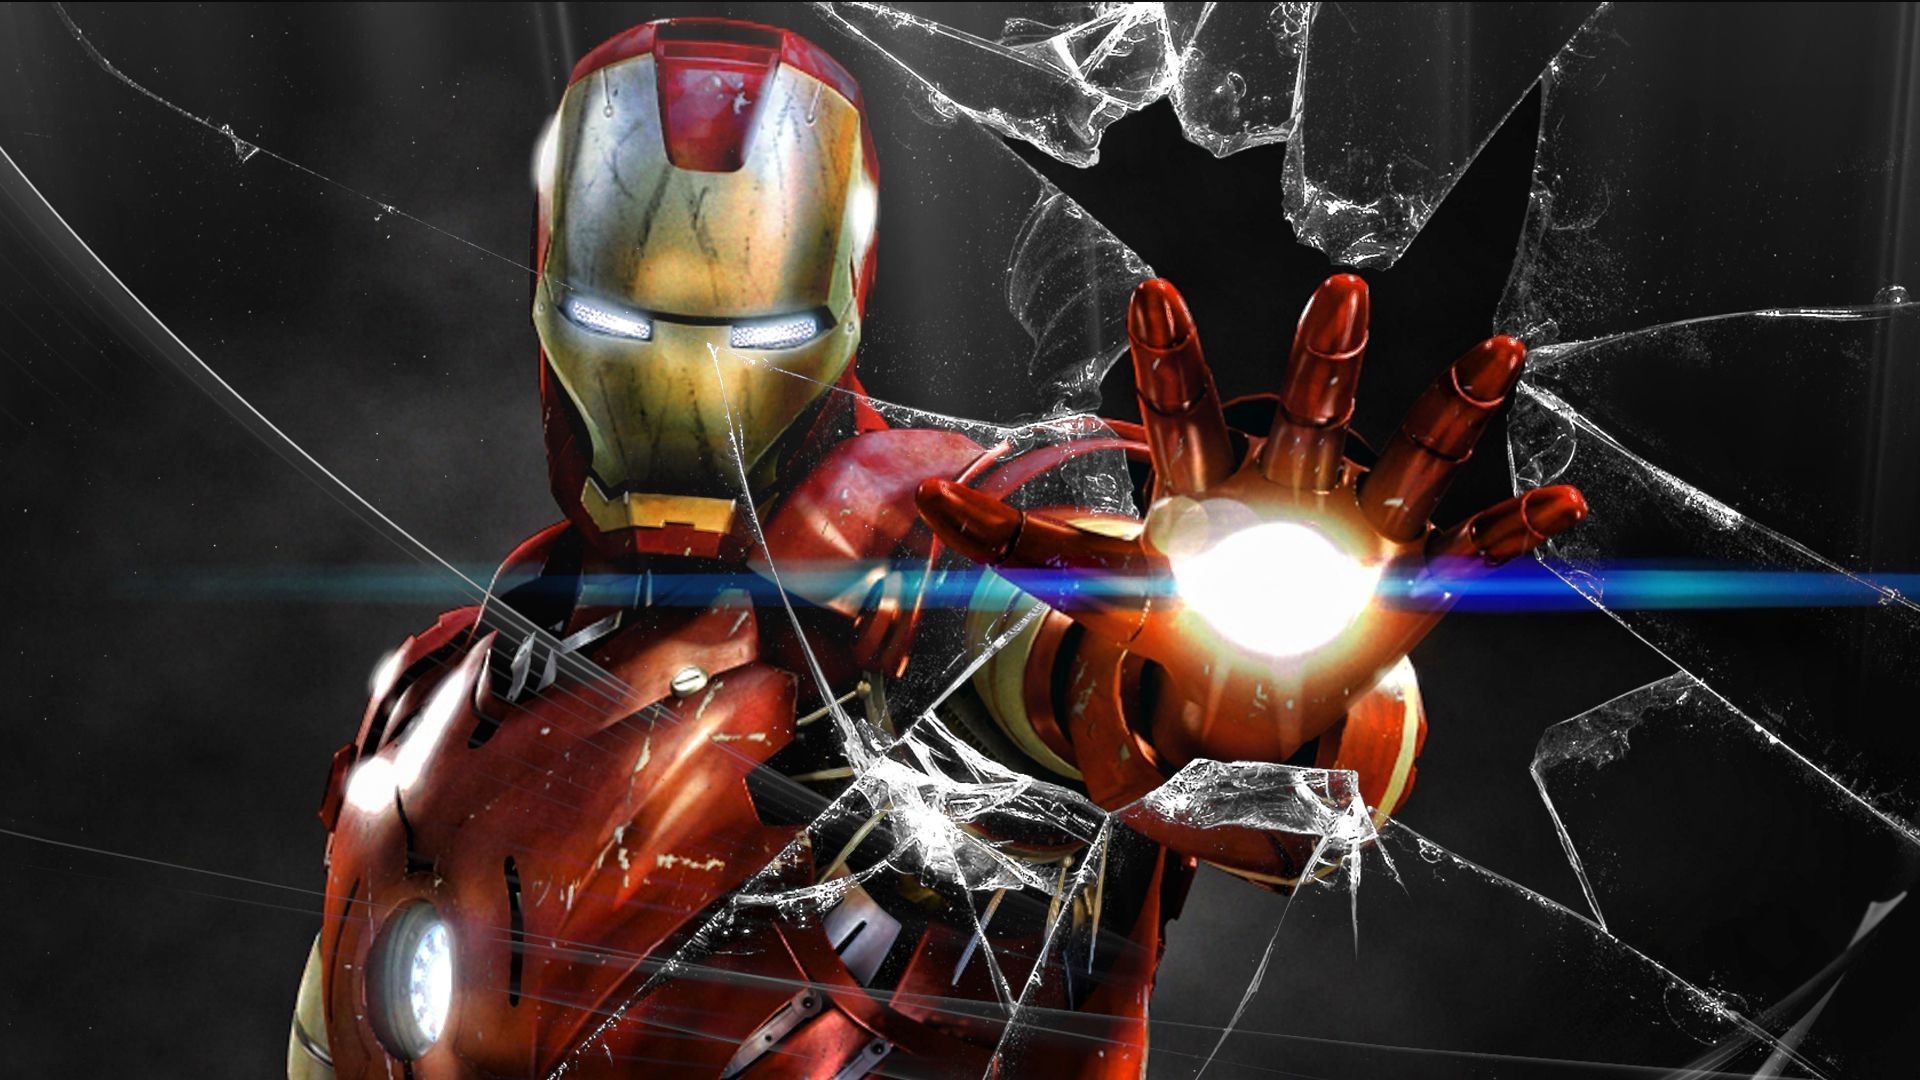 1920x1080 Iron Man 4k Wallpaper Iron Man Wallpaper Iron Man Hd Wallpaper Man Wallpaper